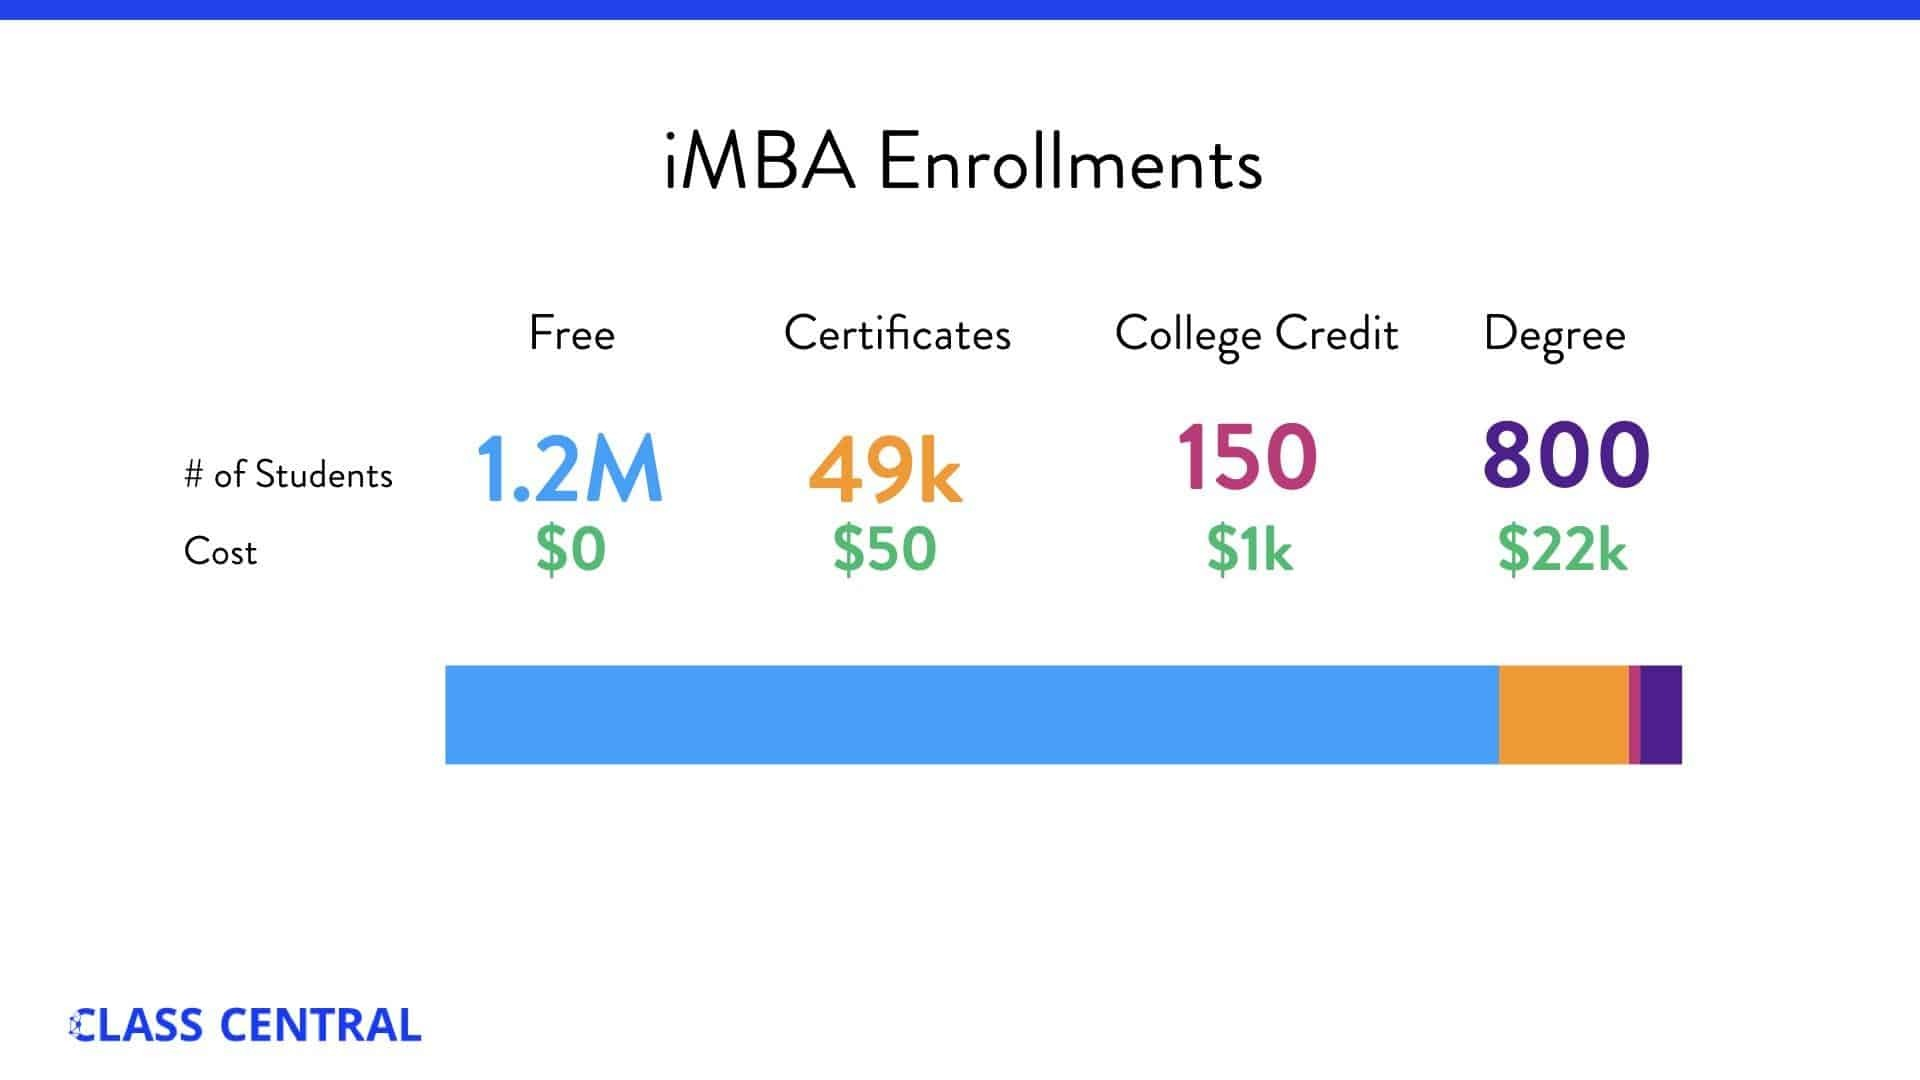 iMBA Enrollment on the online education marketplace Coursera